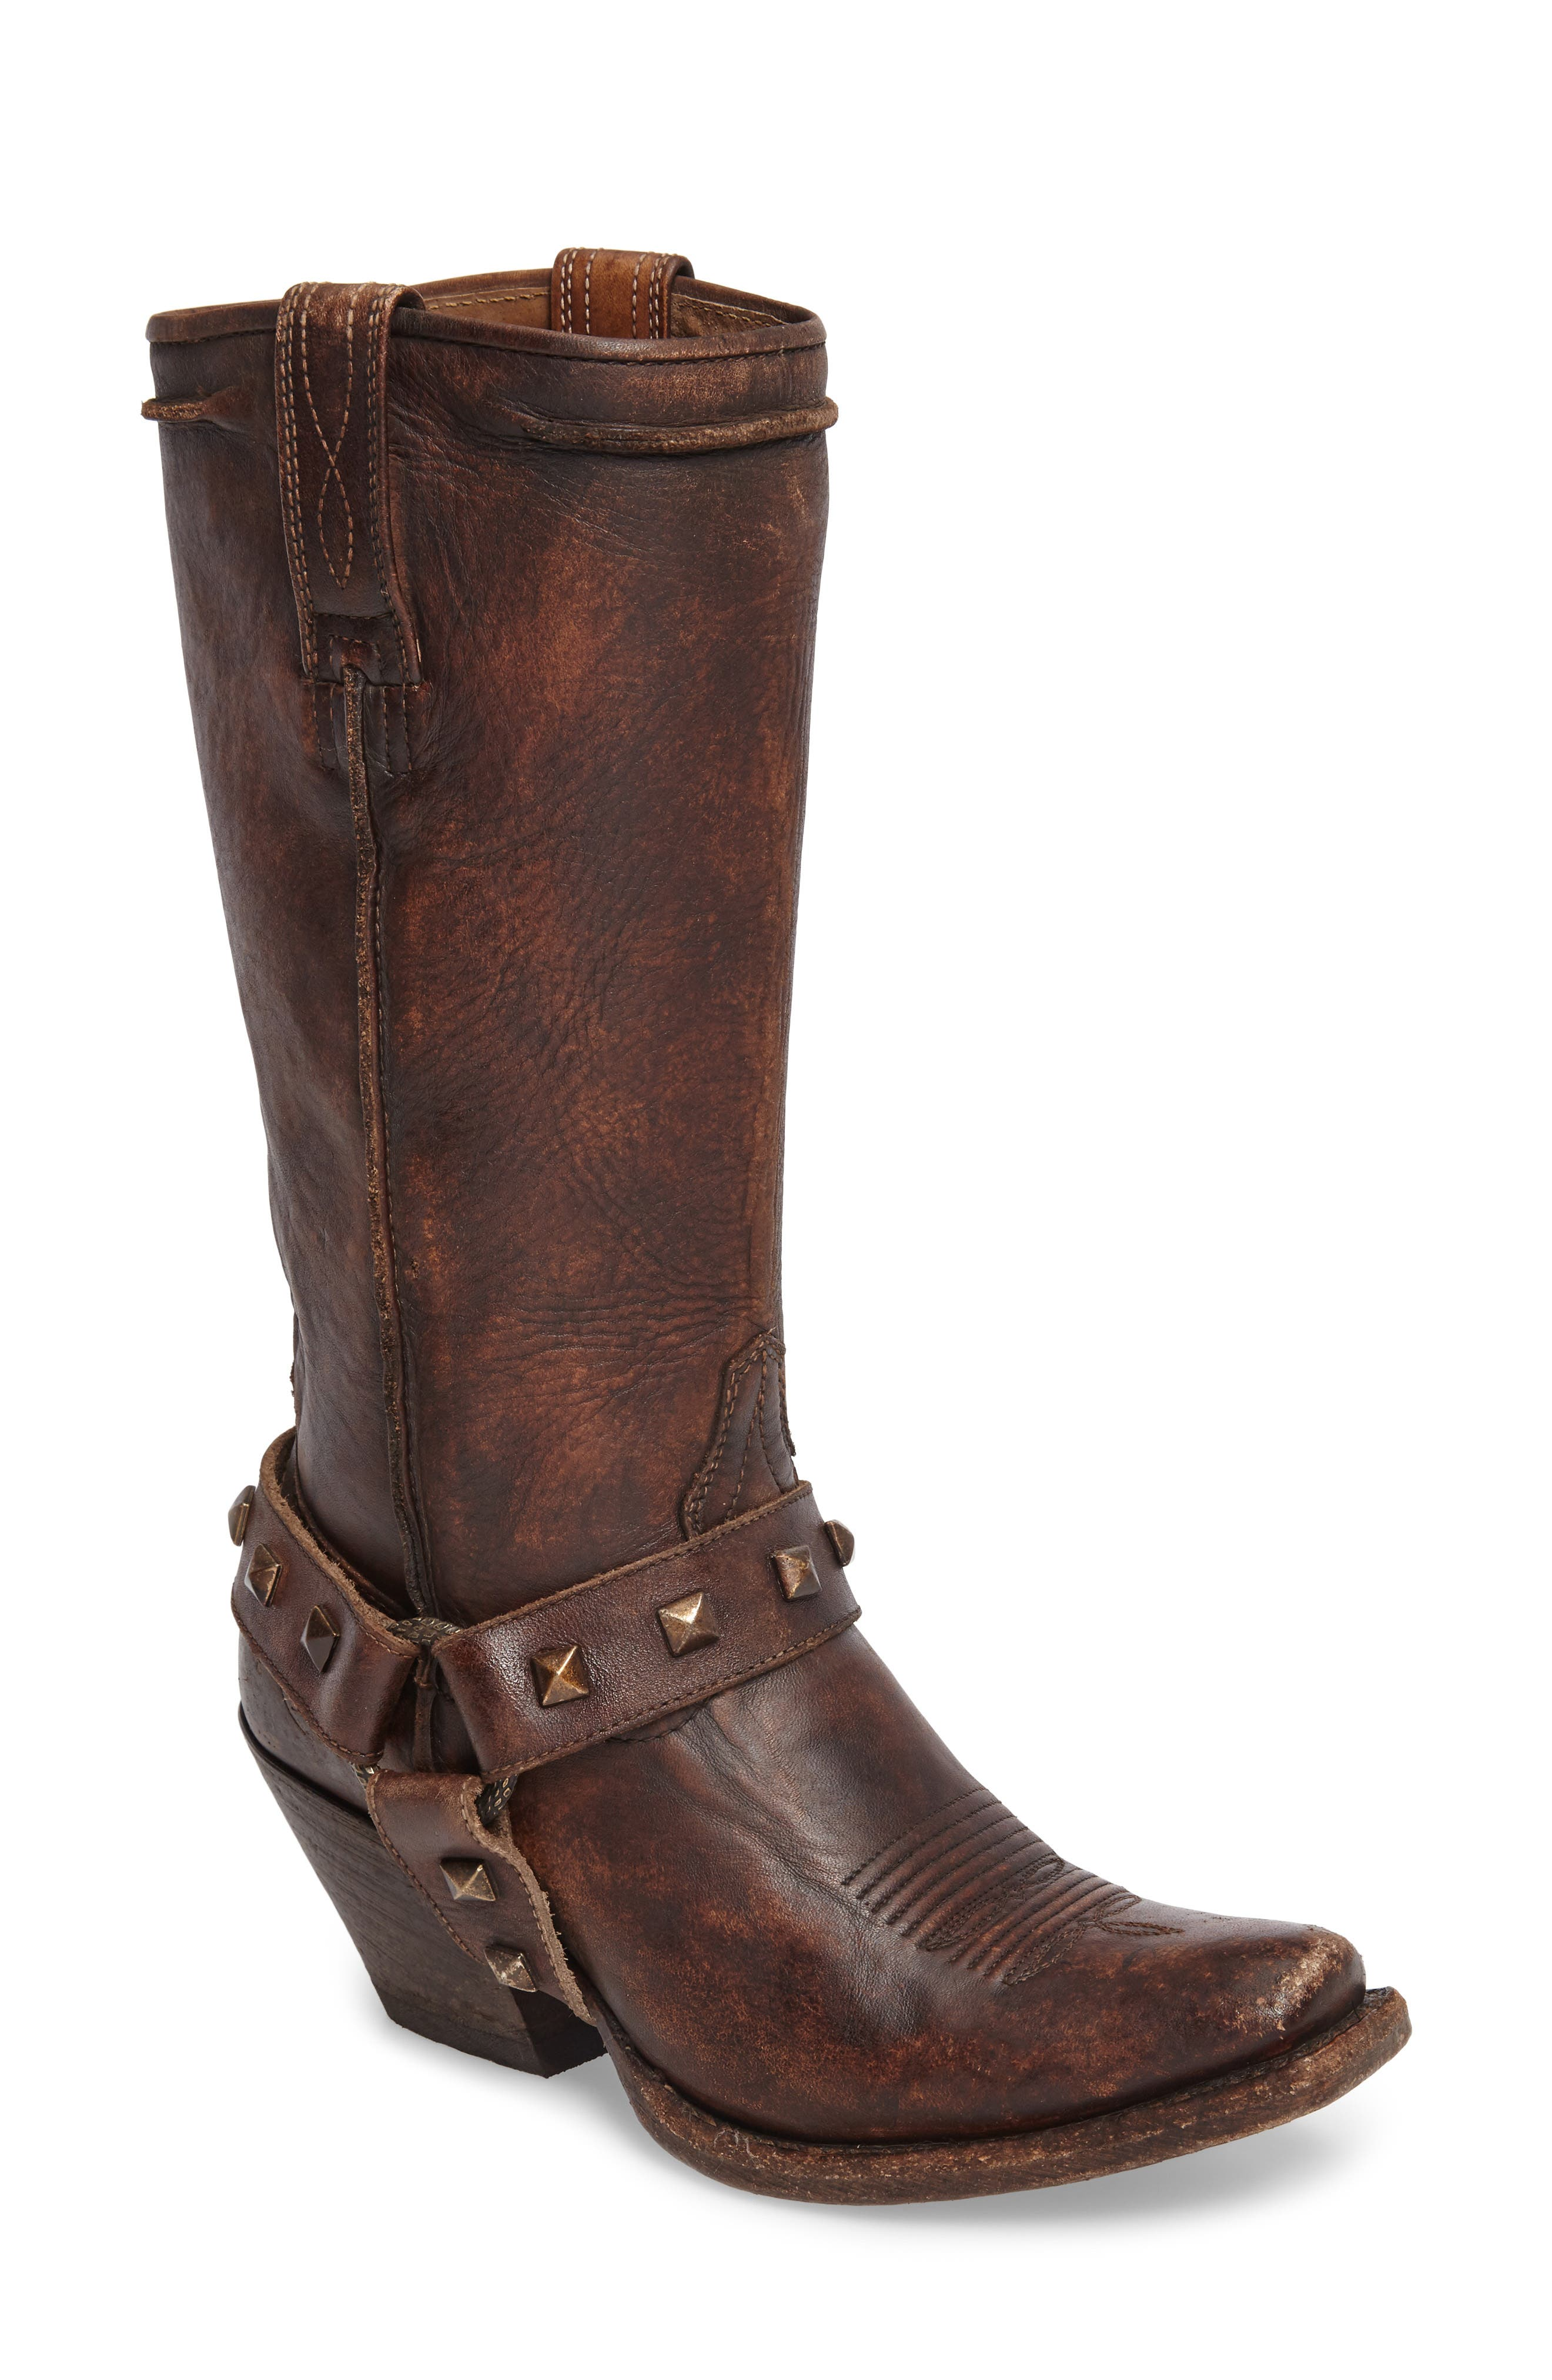 Rowan Western Harness Boot,                         Main,                         color, NATURAL NORWOOD LEATHER